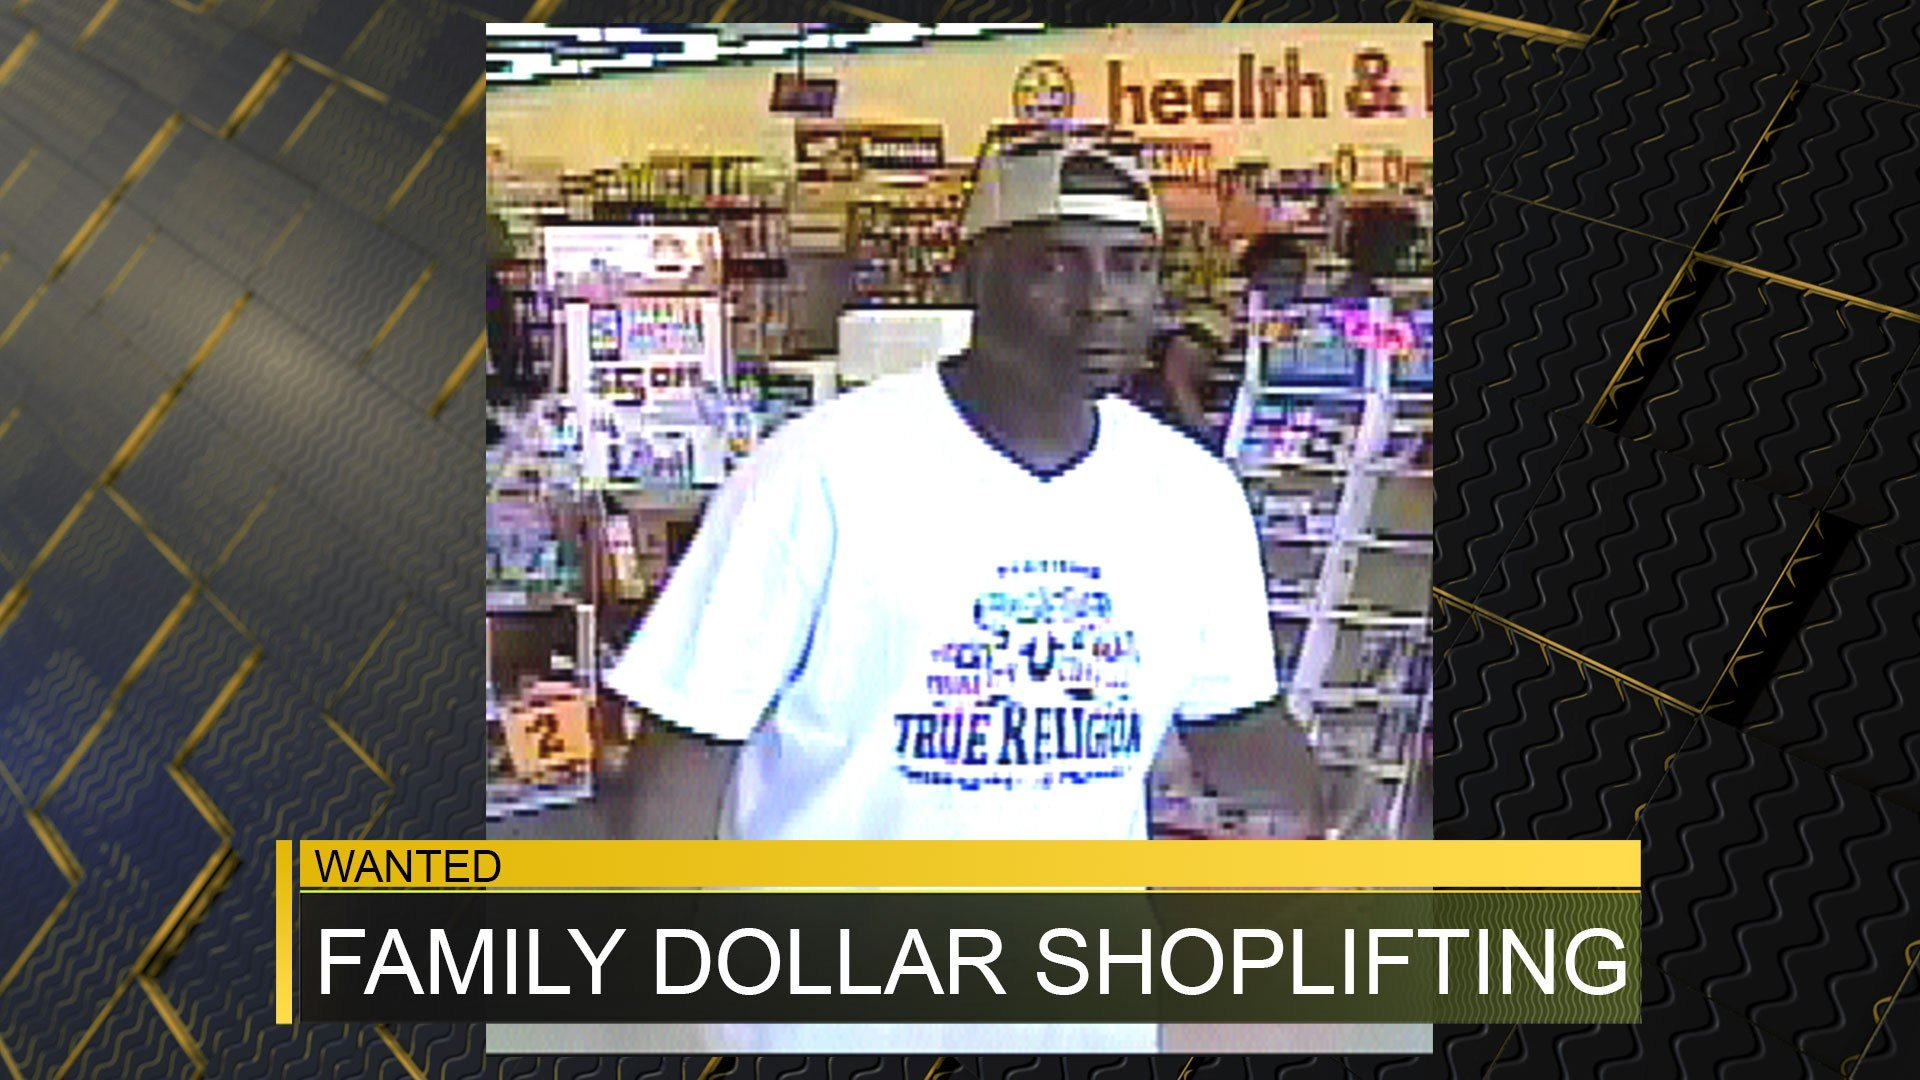 Family Dollar shoplifting subject 3/31/17 (source: Richmond County Sheriff's Office)